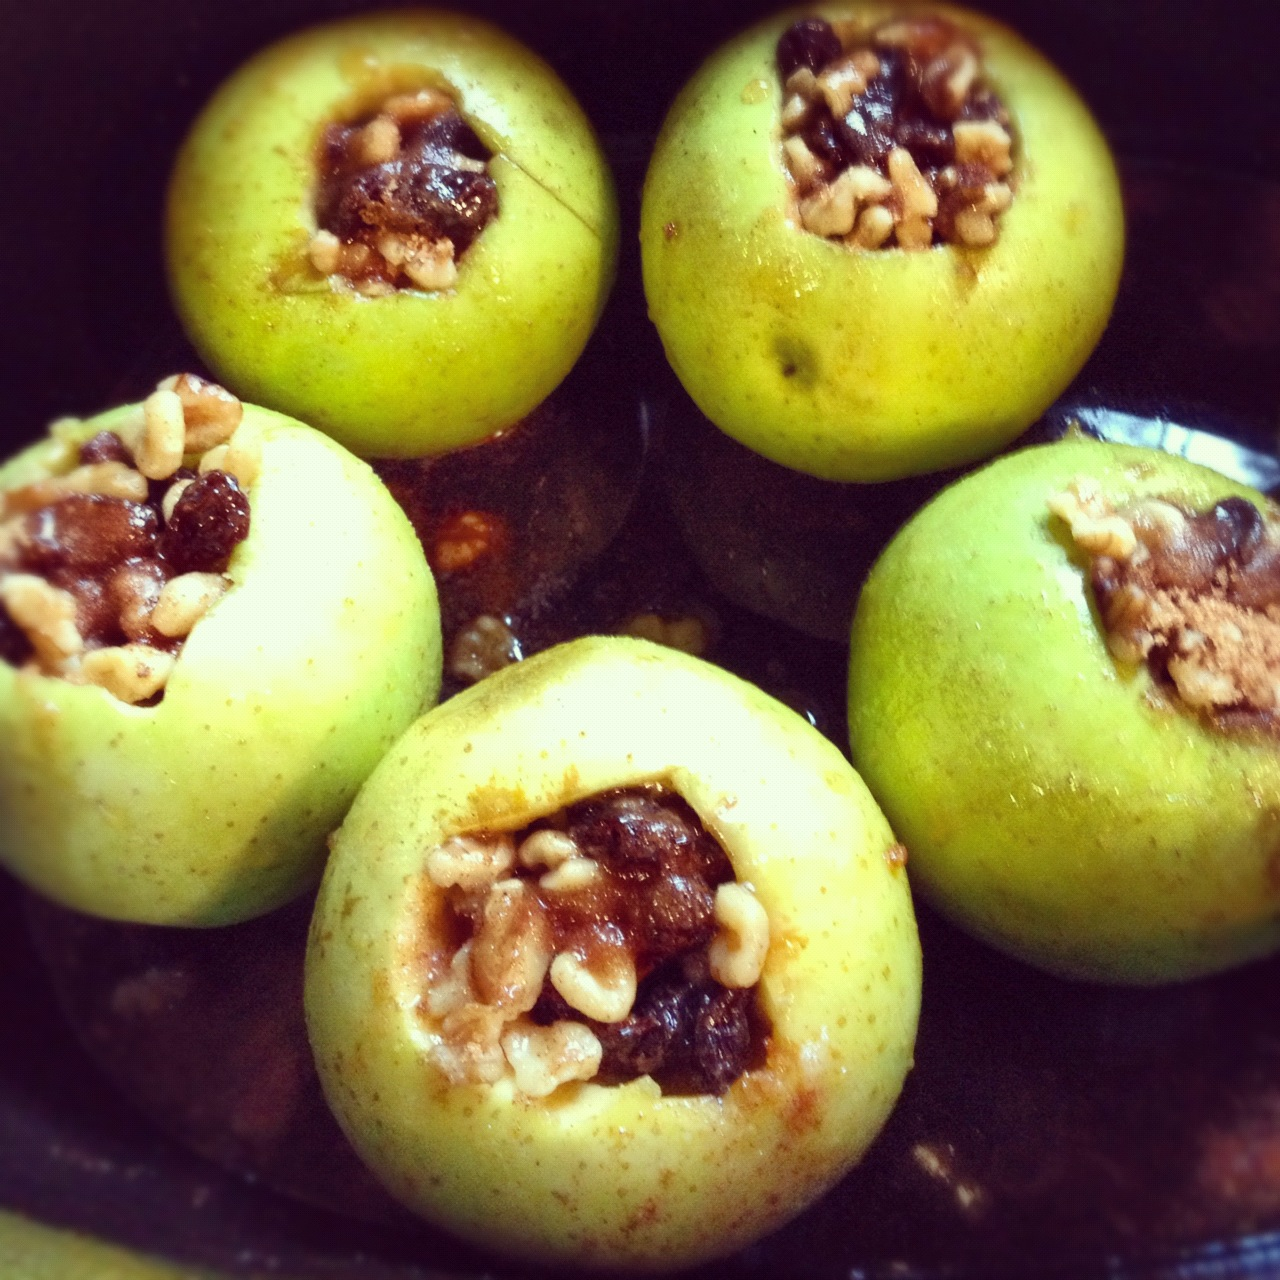 The Southern Slow Cooker : Slow Cooker Ginger Ale Baked Apples Recipe